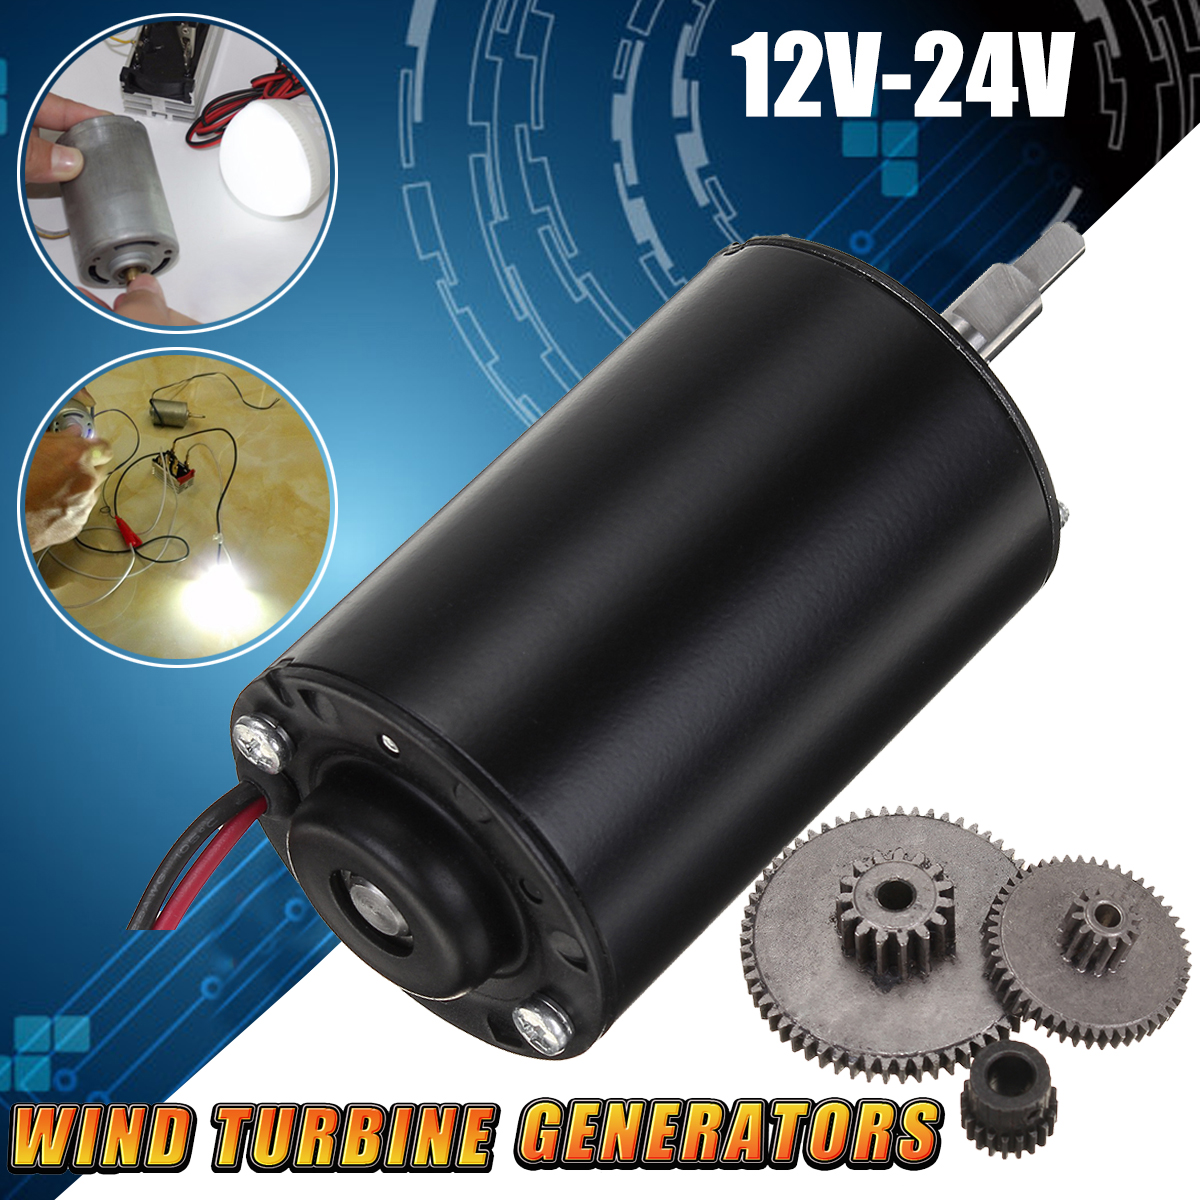 36W DC 12V-24V Small Wind For Turbine Generators Permanent Magnet Motor With Gear 108mm/4.3 inch Popular